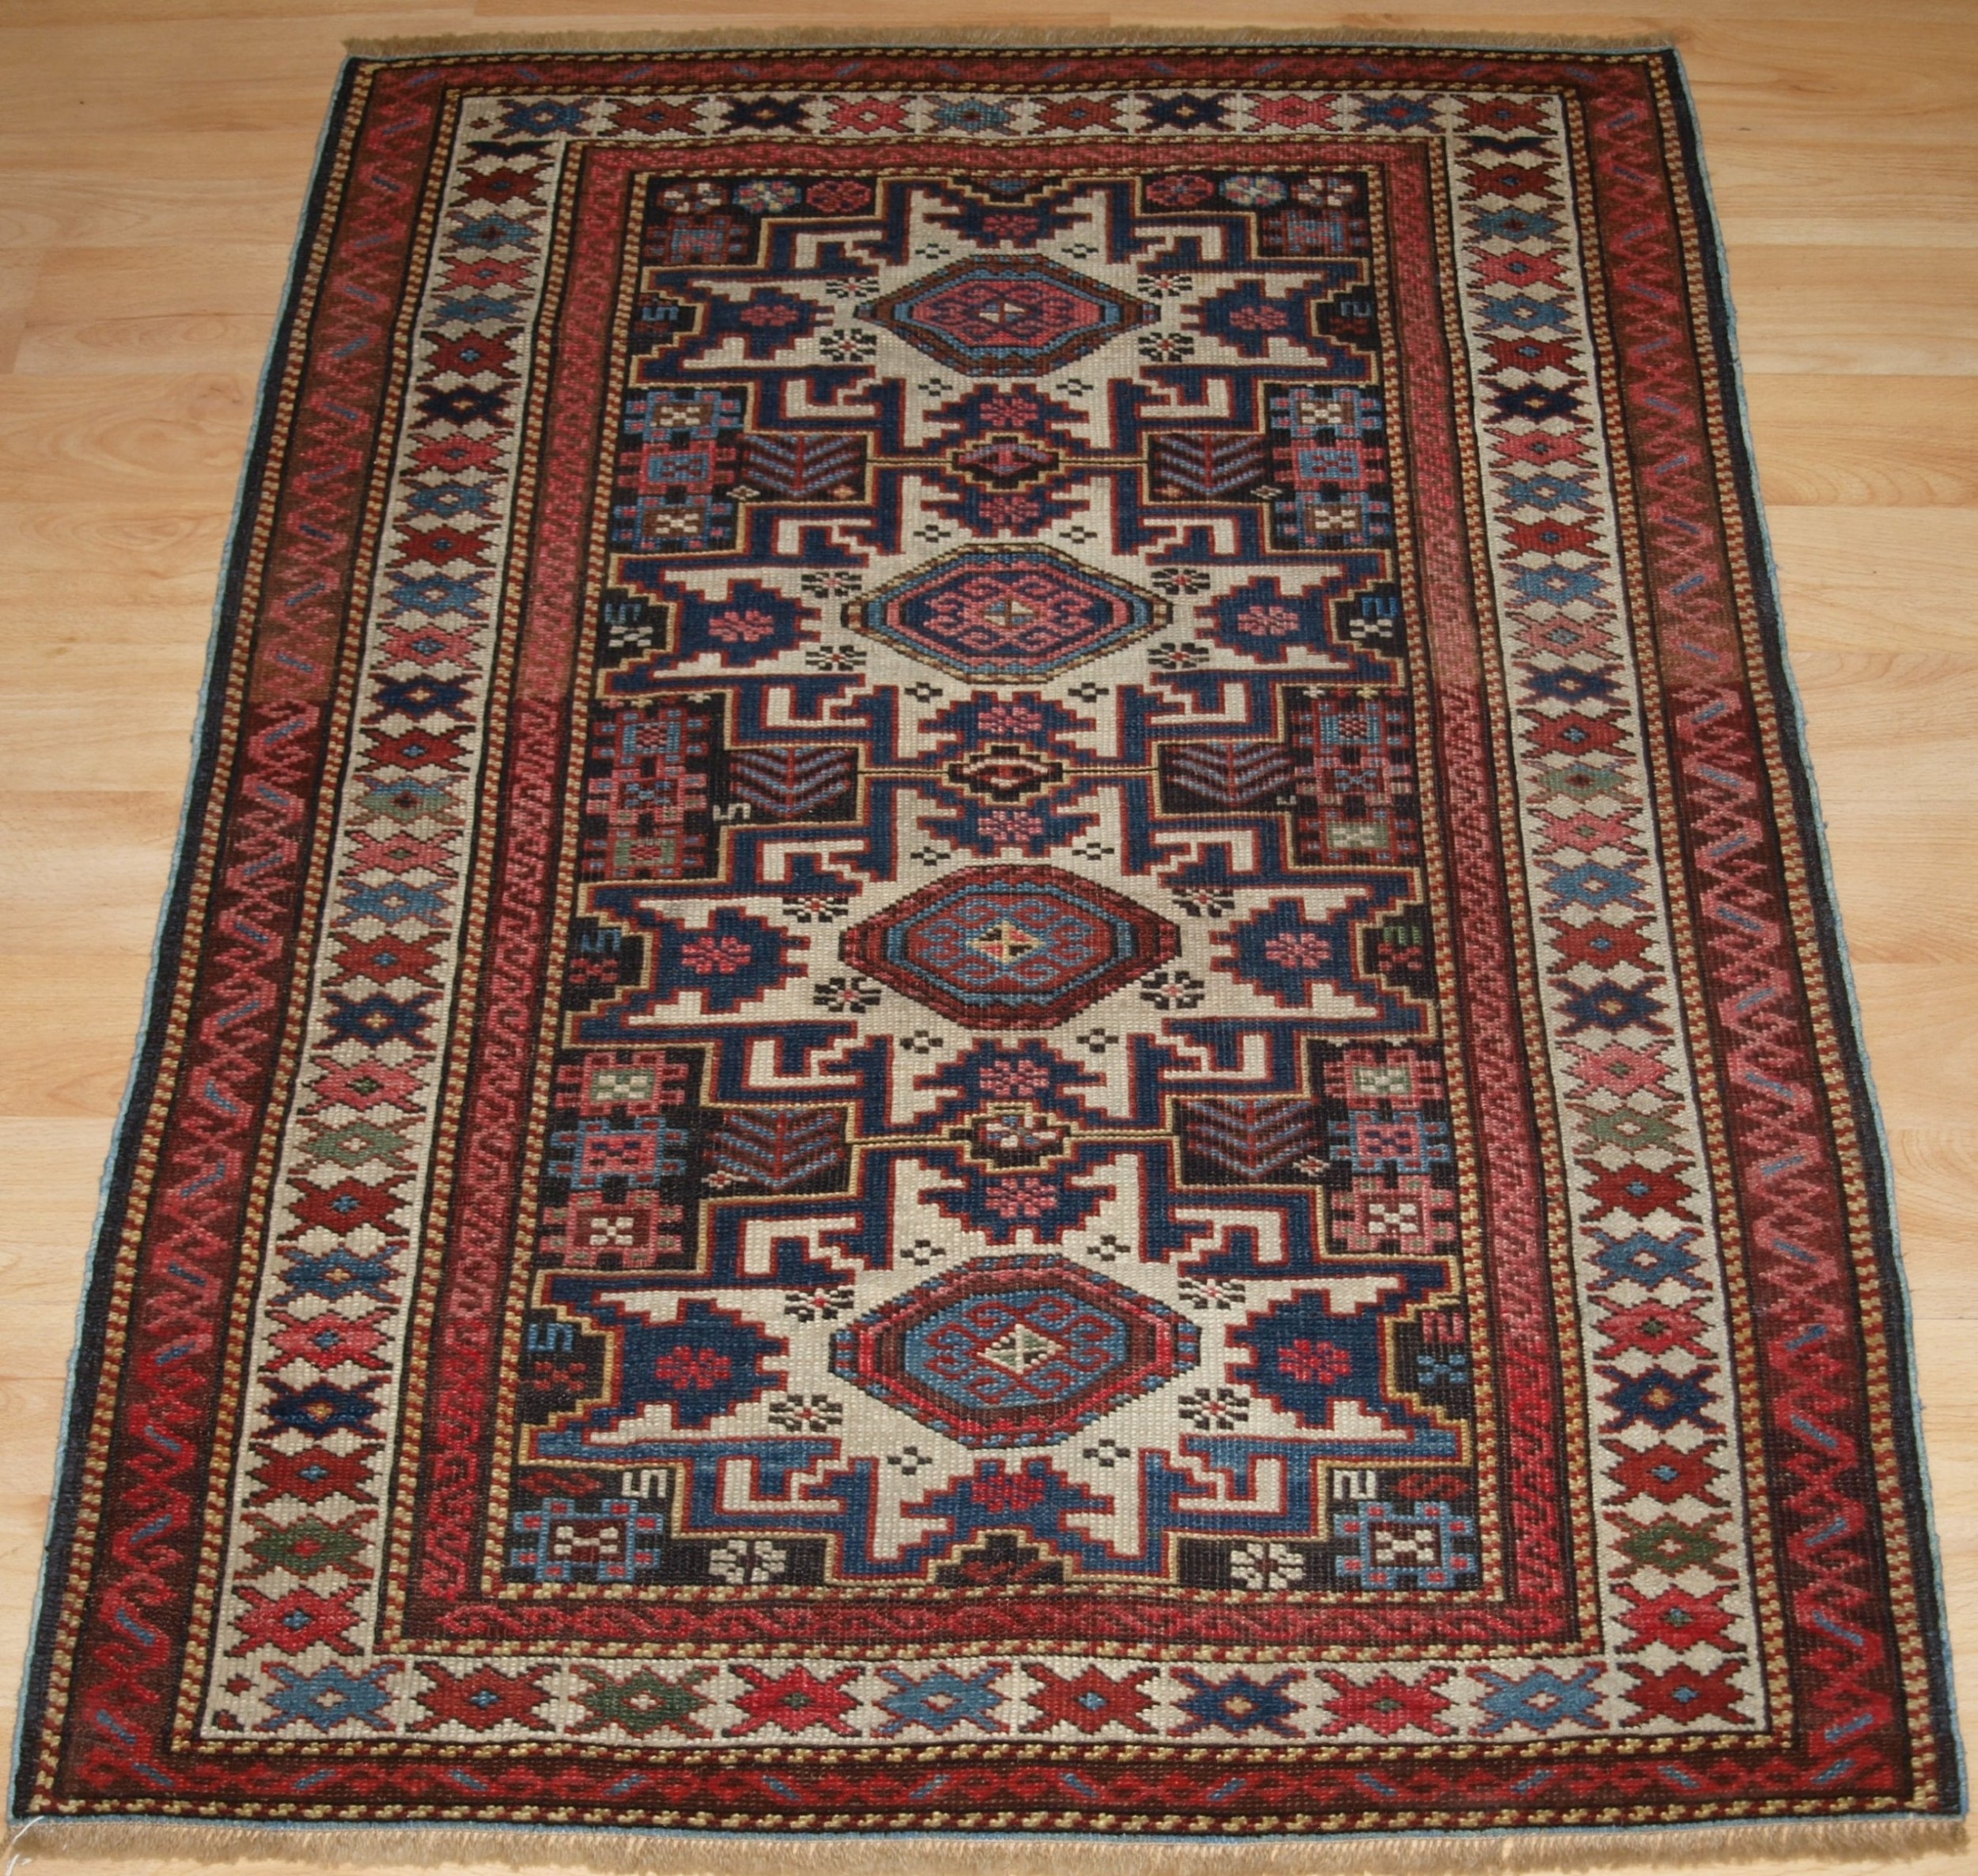 antique east caucasian rug with lesghi star design small size circa 1900